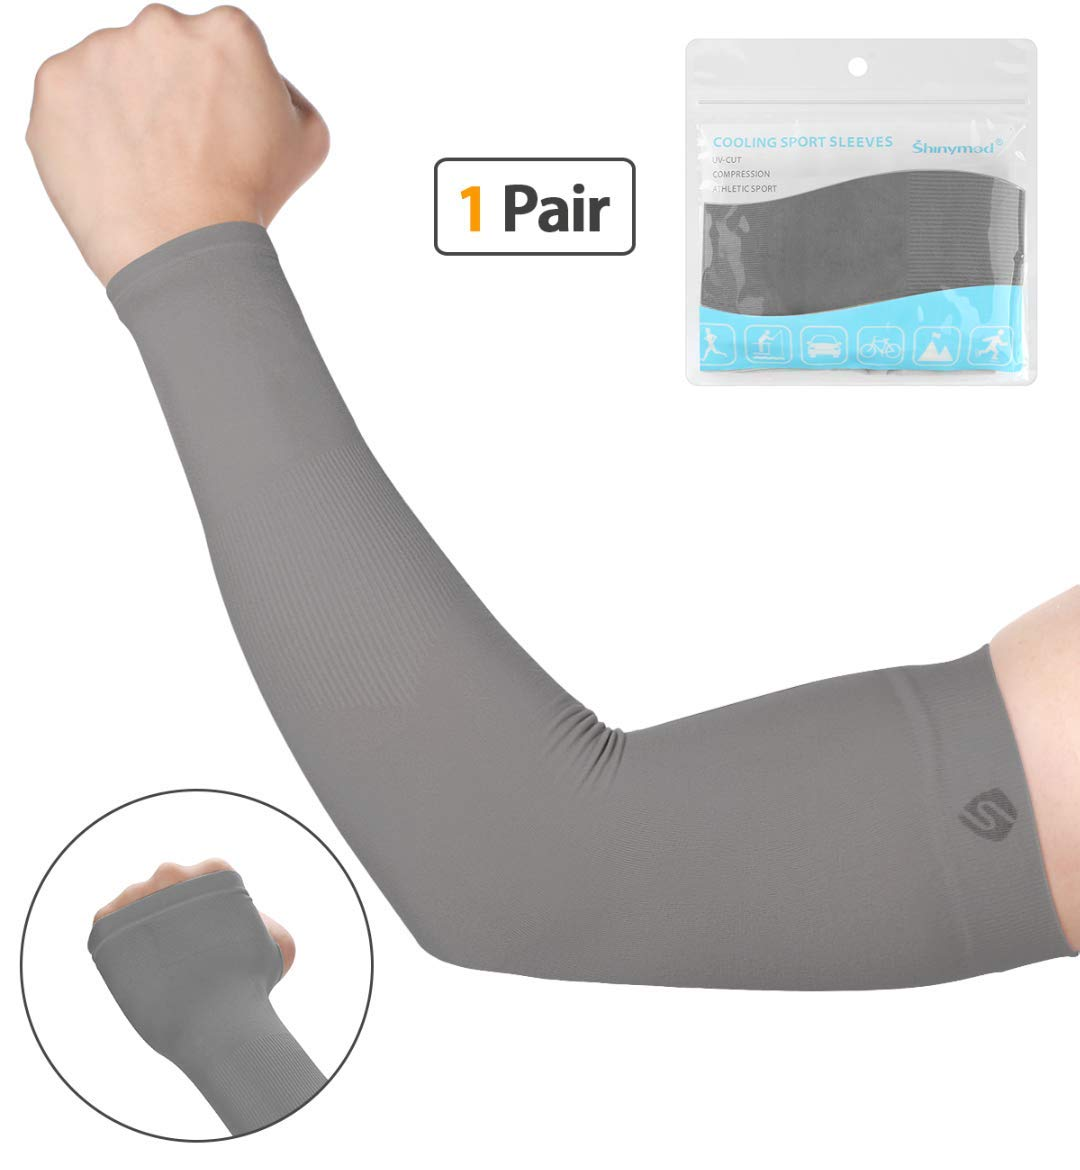 SHINYMOD UV Protection Cooling or Warmer Arm Sleeves for Men Women Kids Sunblock Protective Gloves Running Golf Cycling Driving 1 Pair/ 3 Pairs/ 5 Pairs Long Tattoo Cover Arm Warmer-Dark Grey